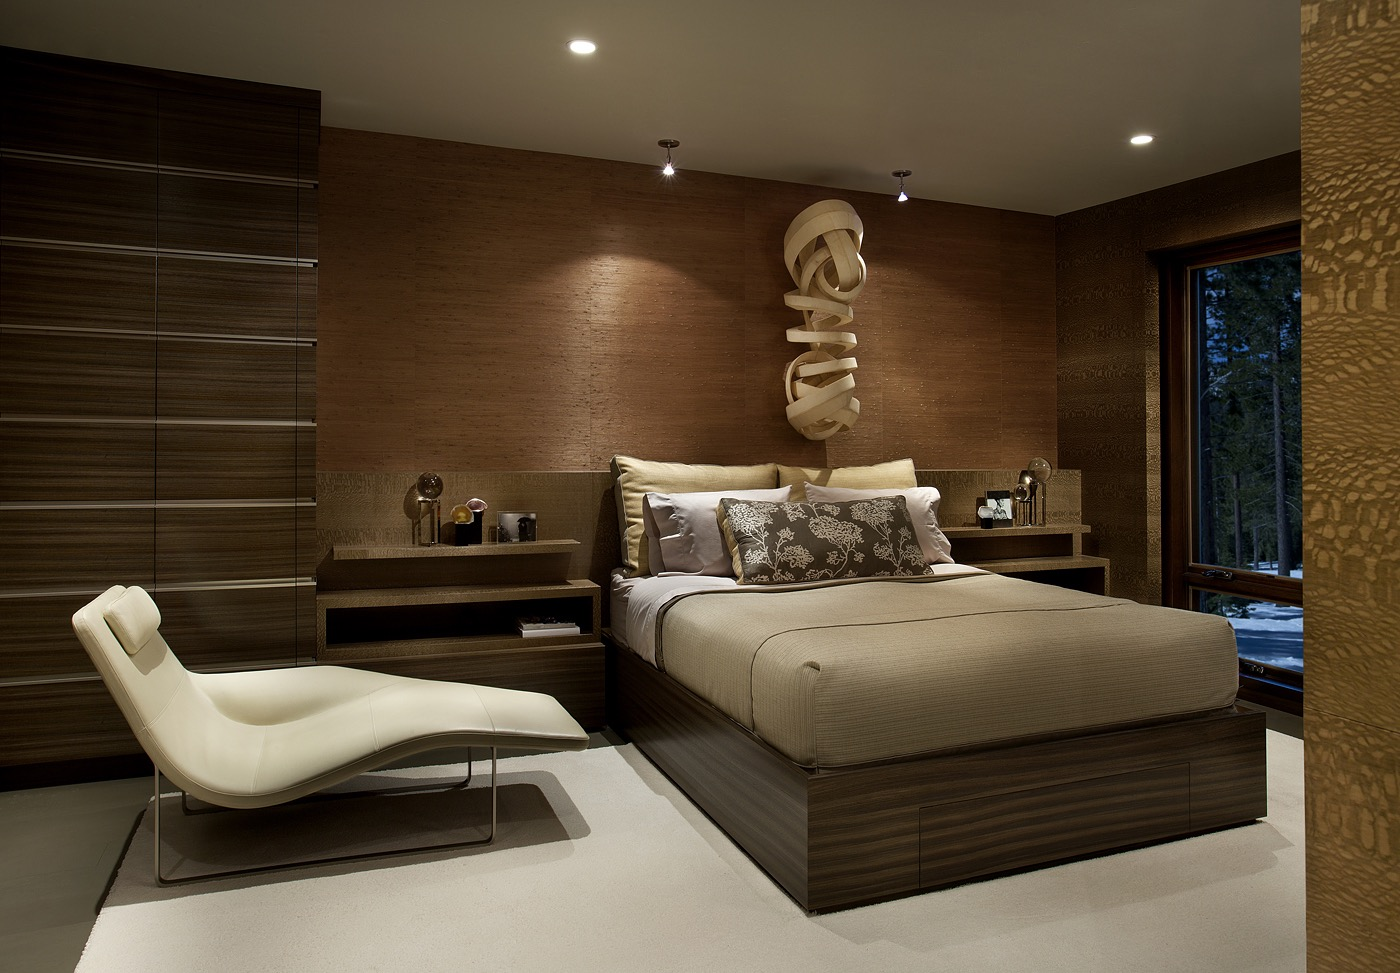 modern brown bedroom ideas modern bedroom decor in comfortable nuance 16733 16334